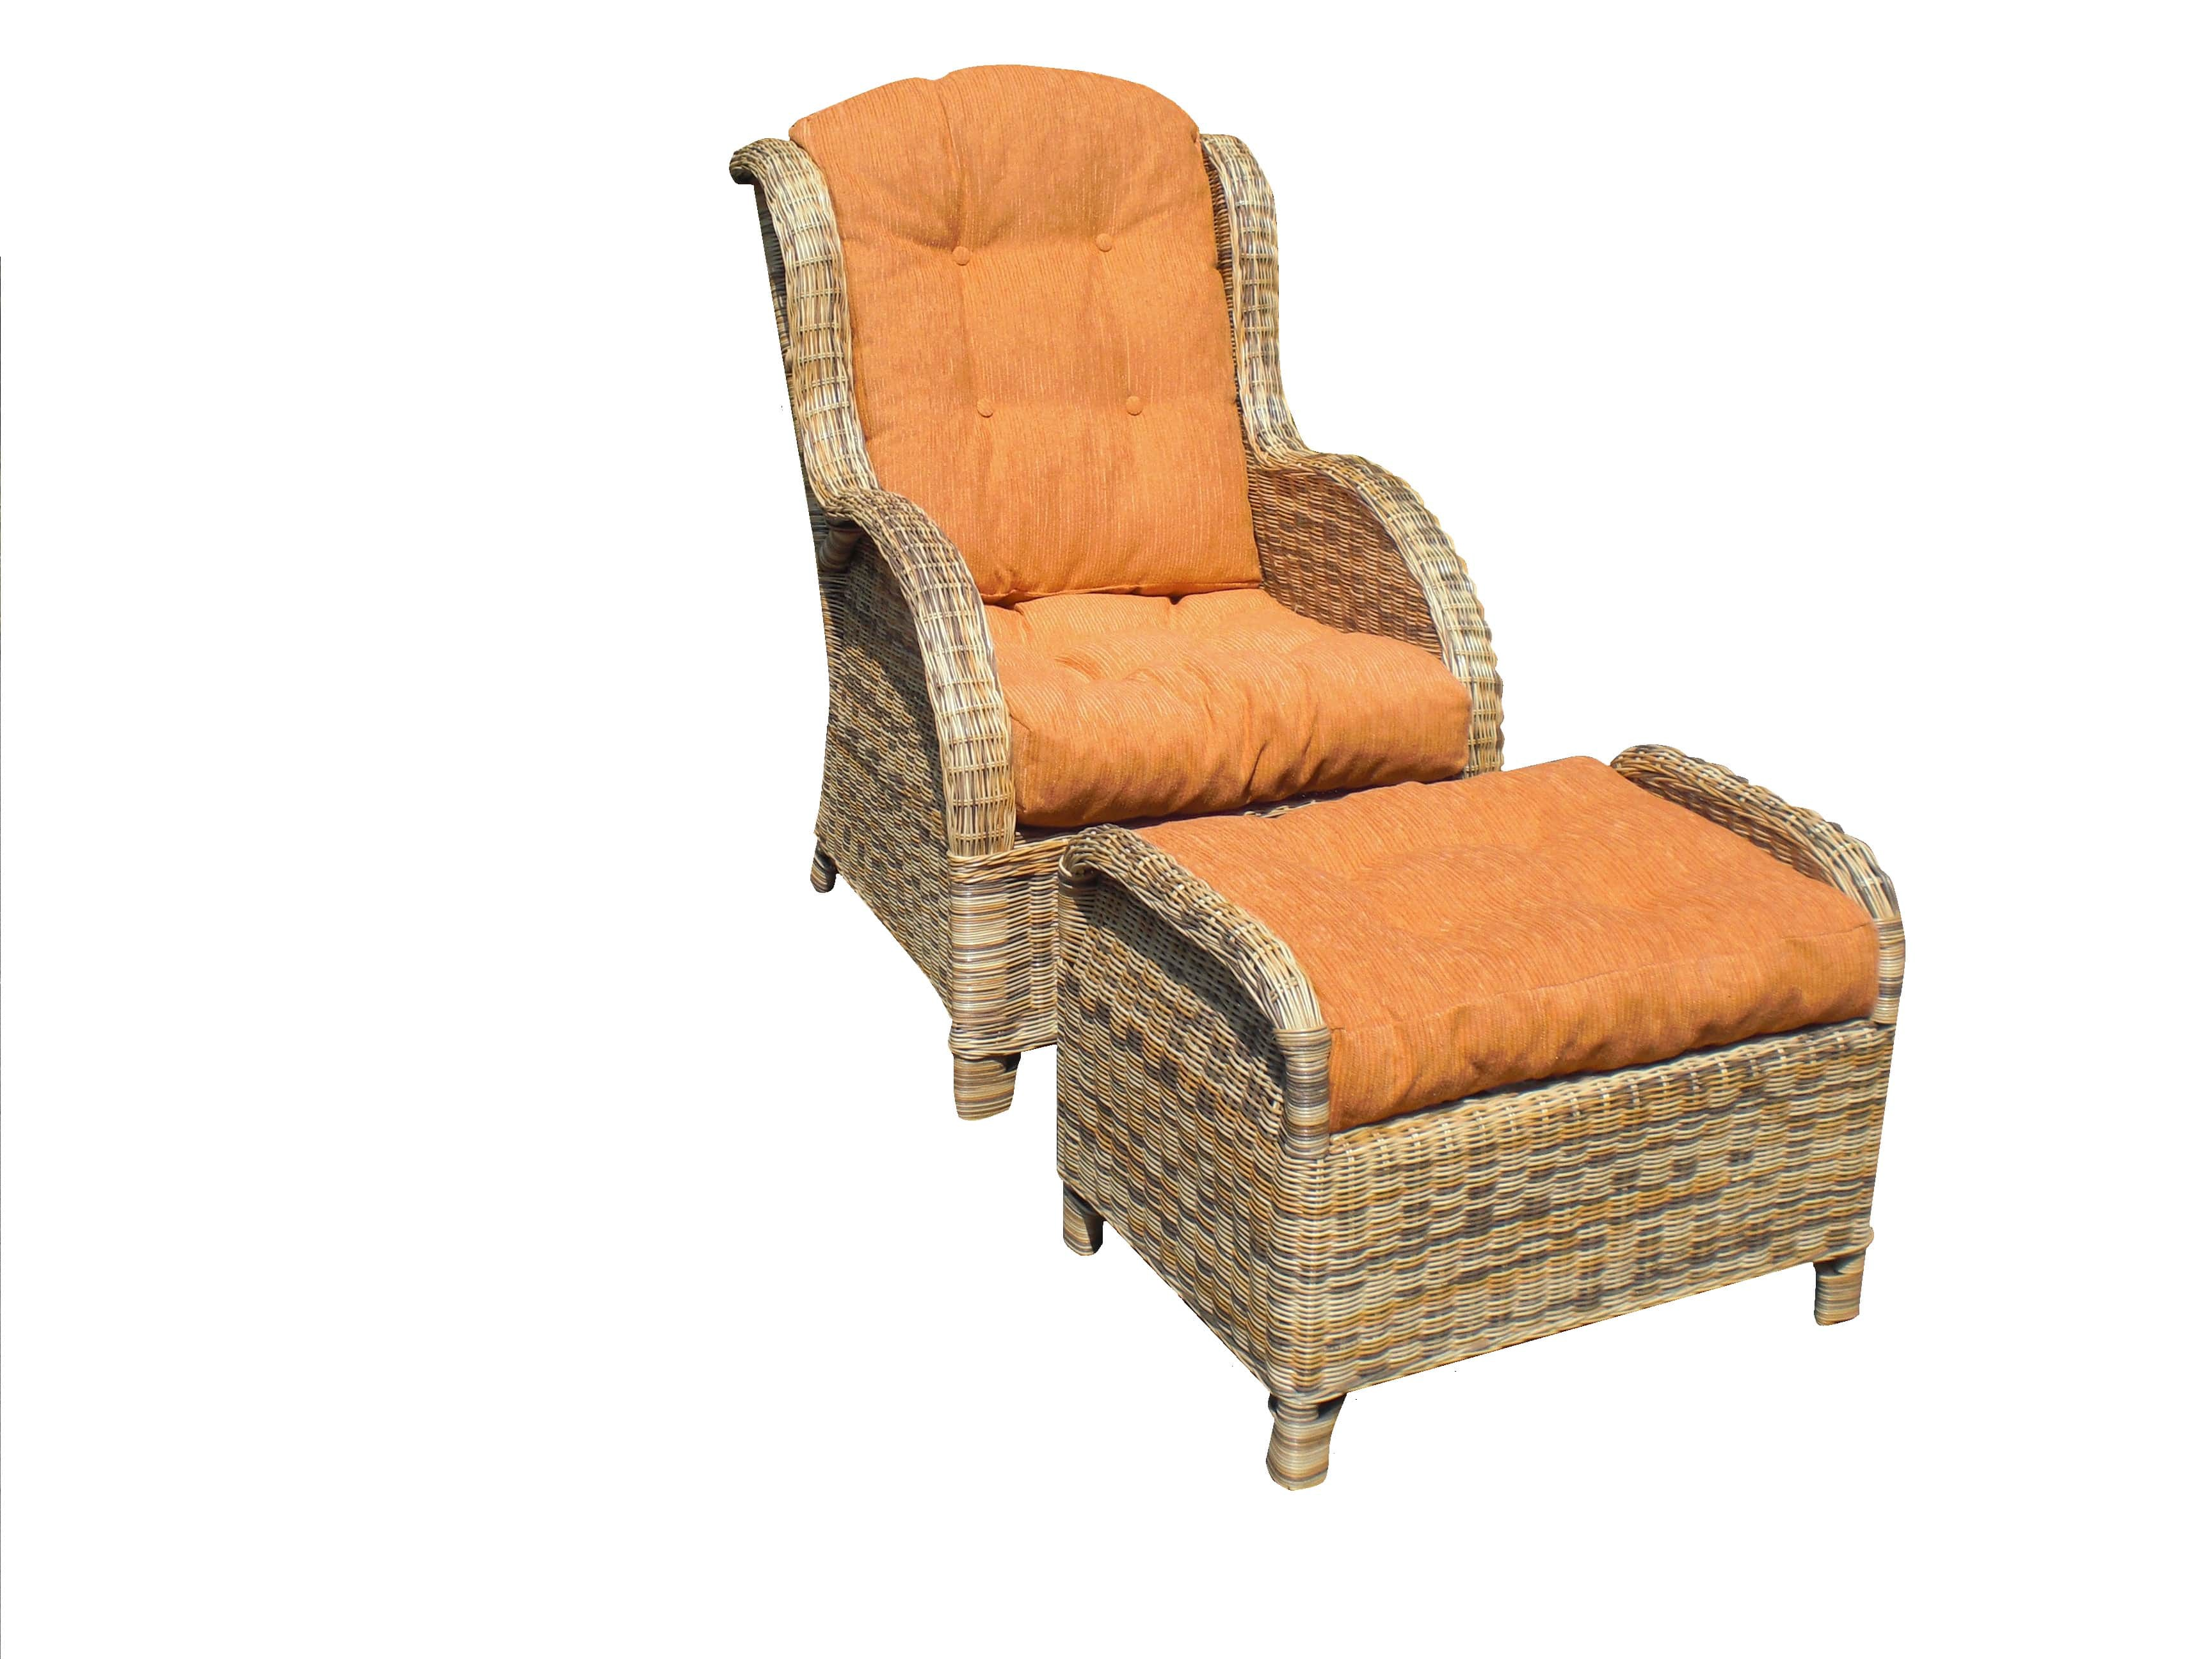 Purchase Wicker Chair With Ottoman For Living Room Dedi